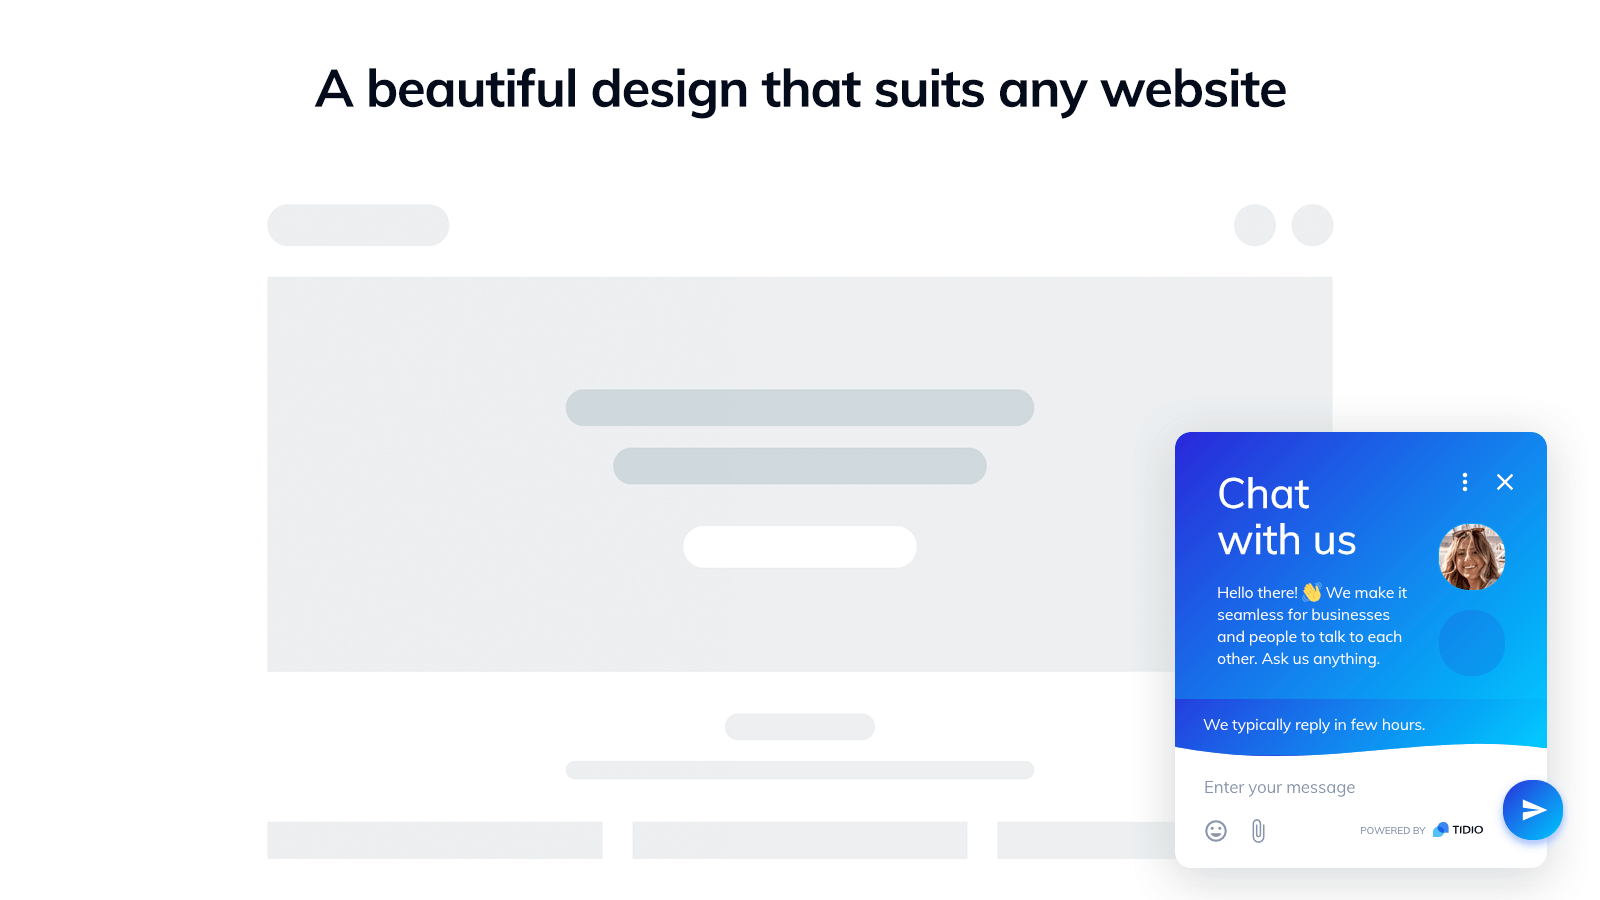 A beautiful design that suits any website